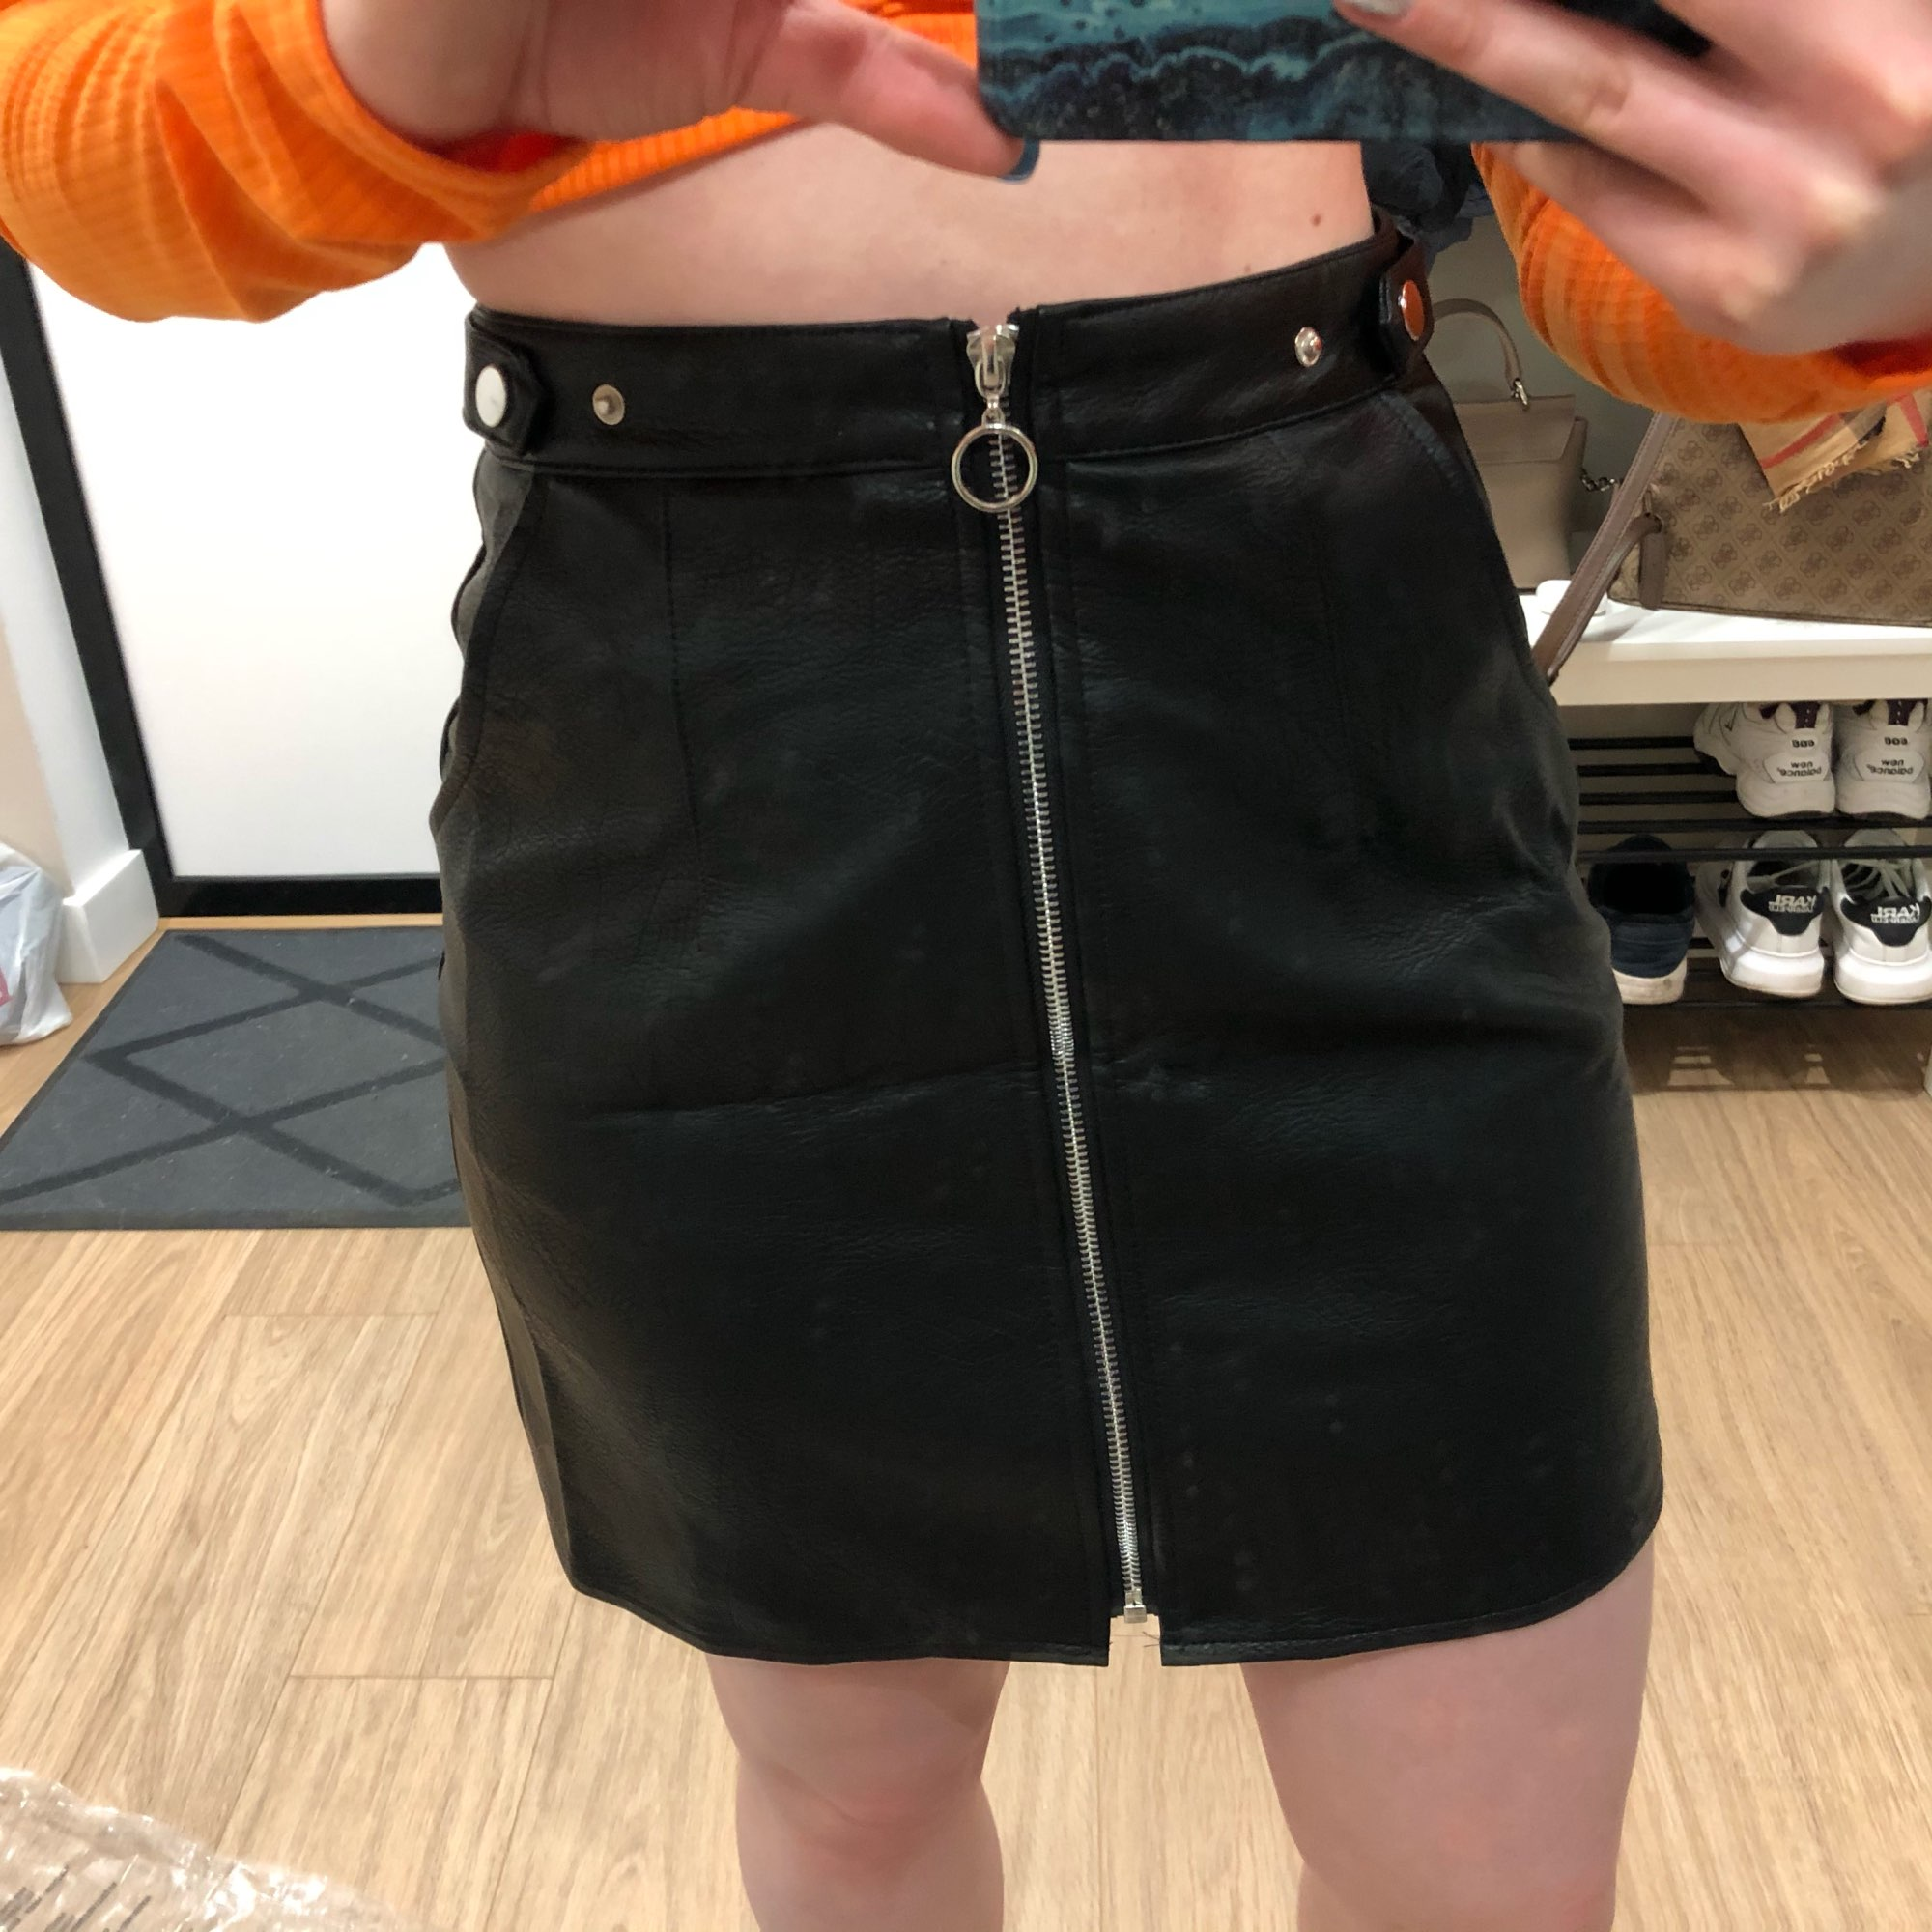 2020 early spring European and American style women's new wholesale high waist pocket zipper PU leather skirt high quality|Skirts|   - AliExpress